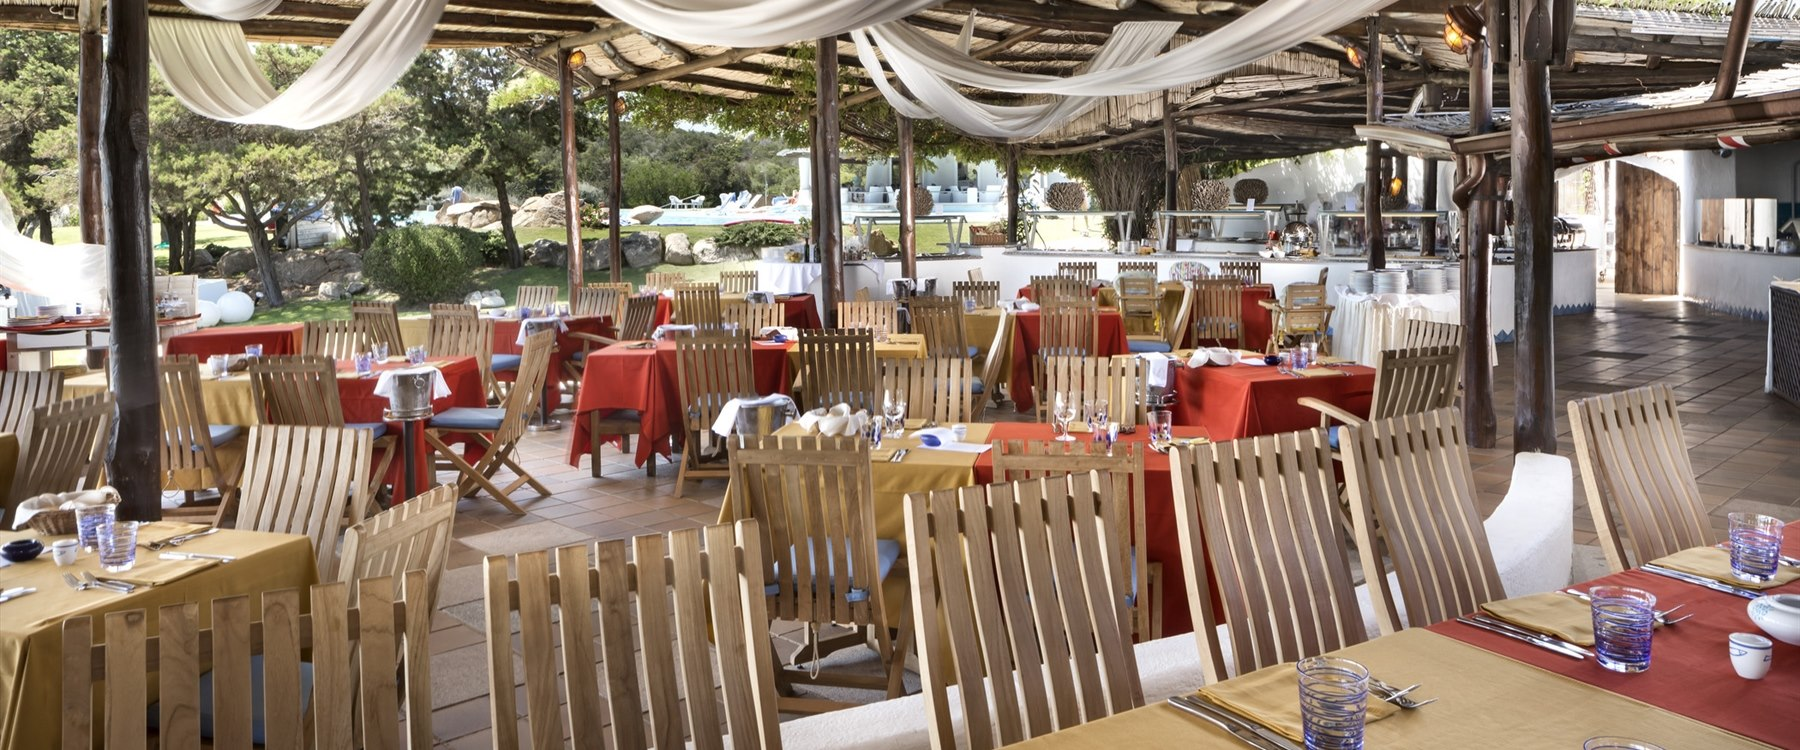 barbecue restaurant at Hotel Romazzino, Sardinia